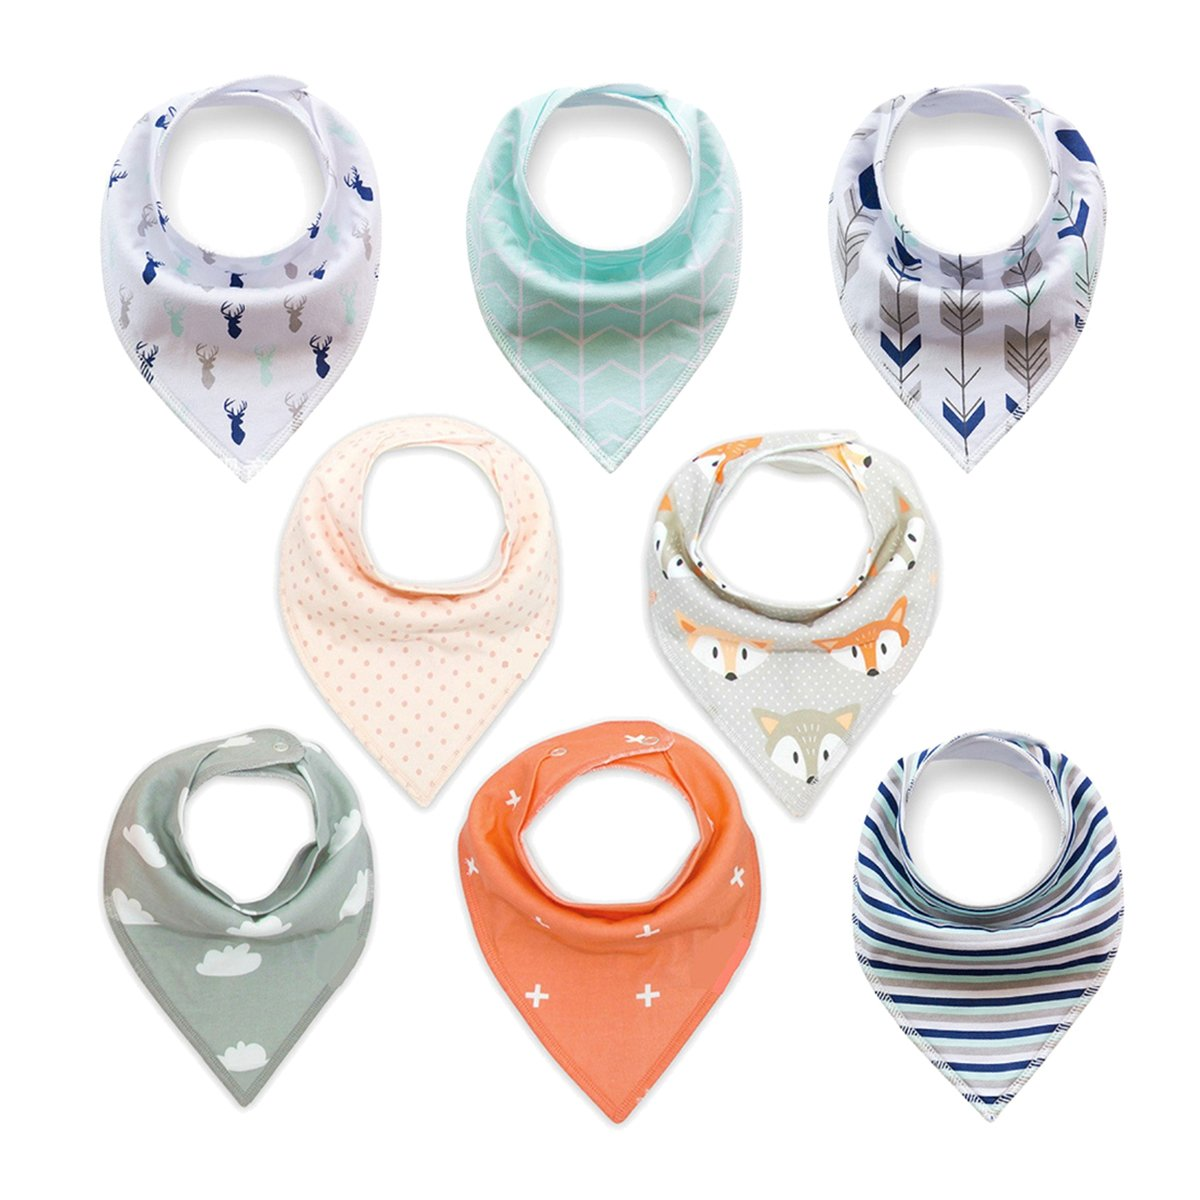 Baby Bandana Drool Bibs, Organic Absorbent Cotton Bibs for Drooling and Teething Feeding Gift Set for Boys Girls Baby Shower Gift Burp Cloth 8-Pack Gontic Baby Bibs -47